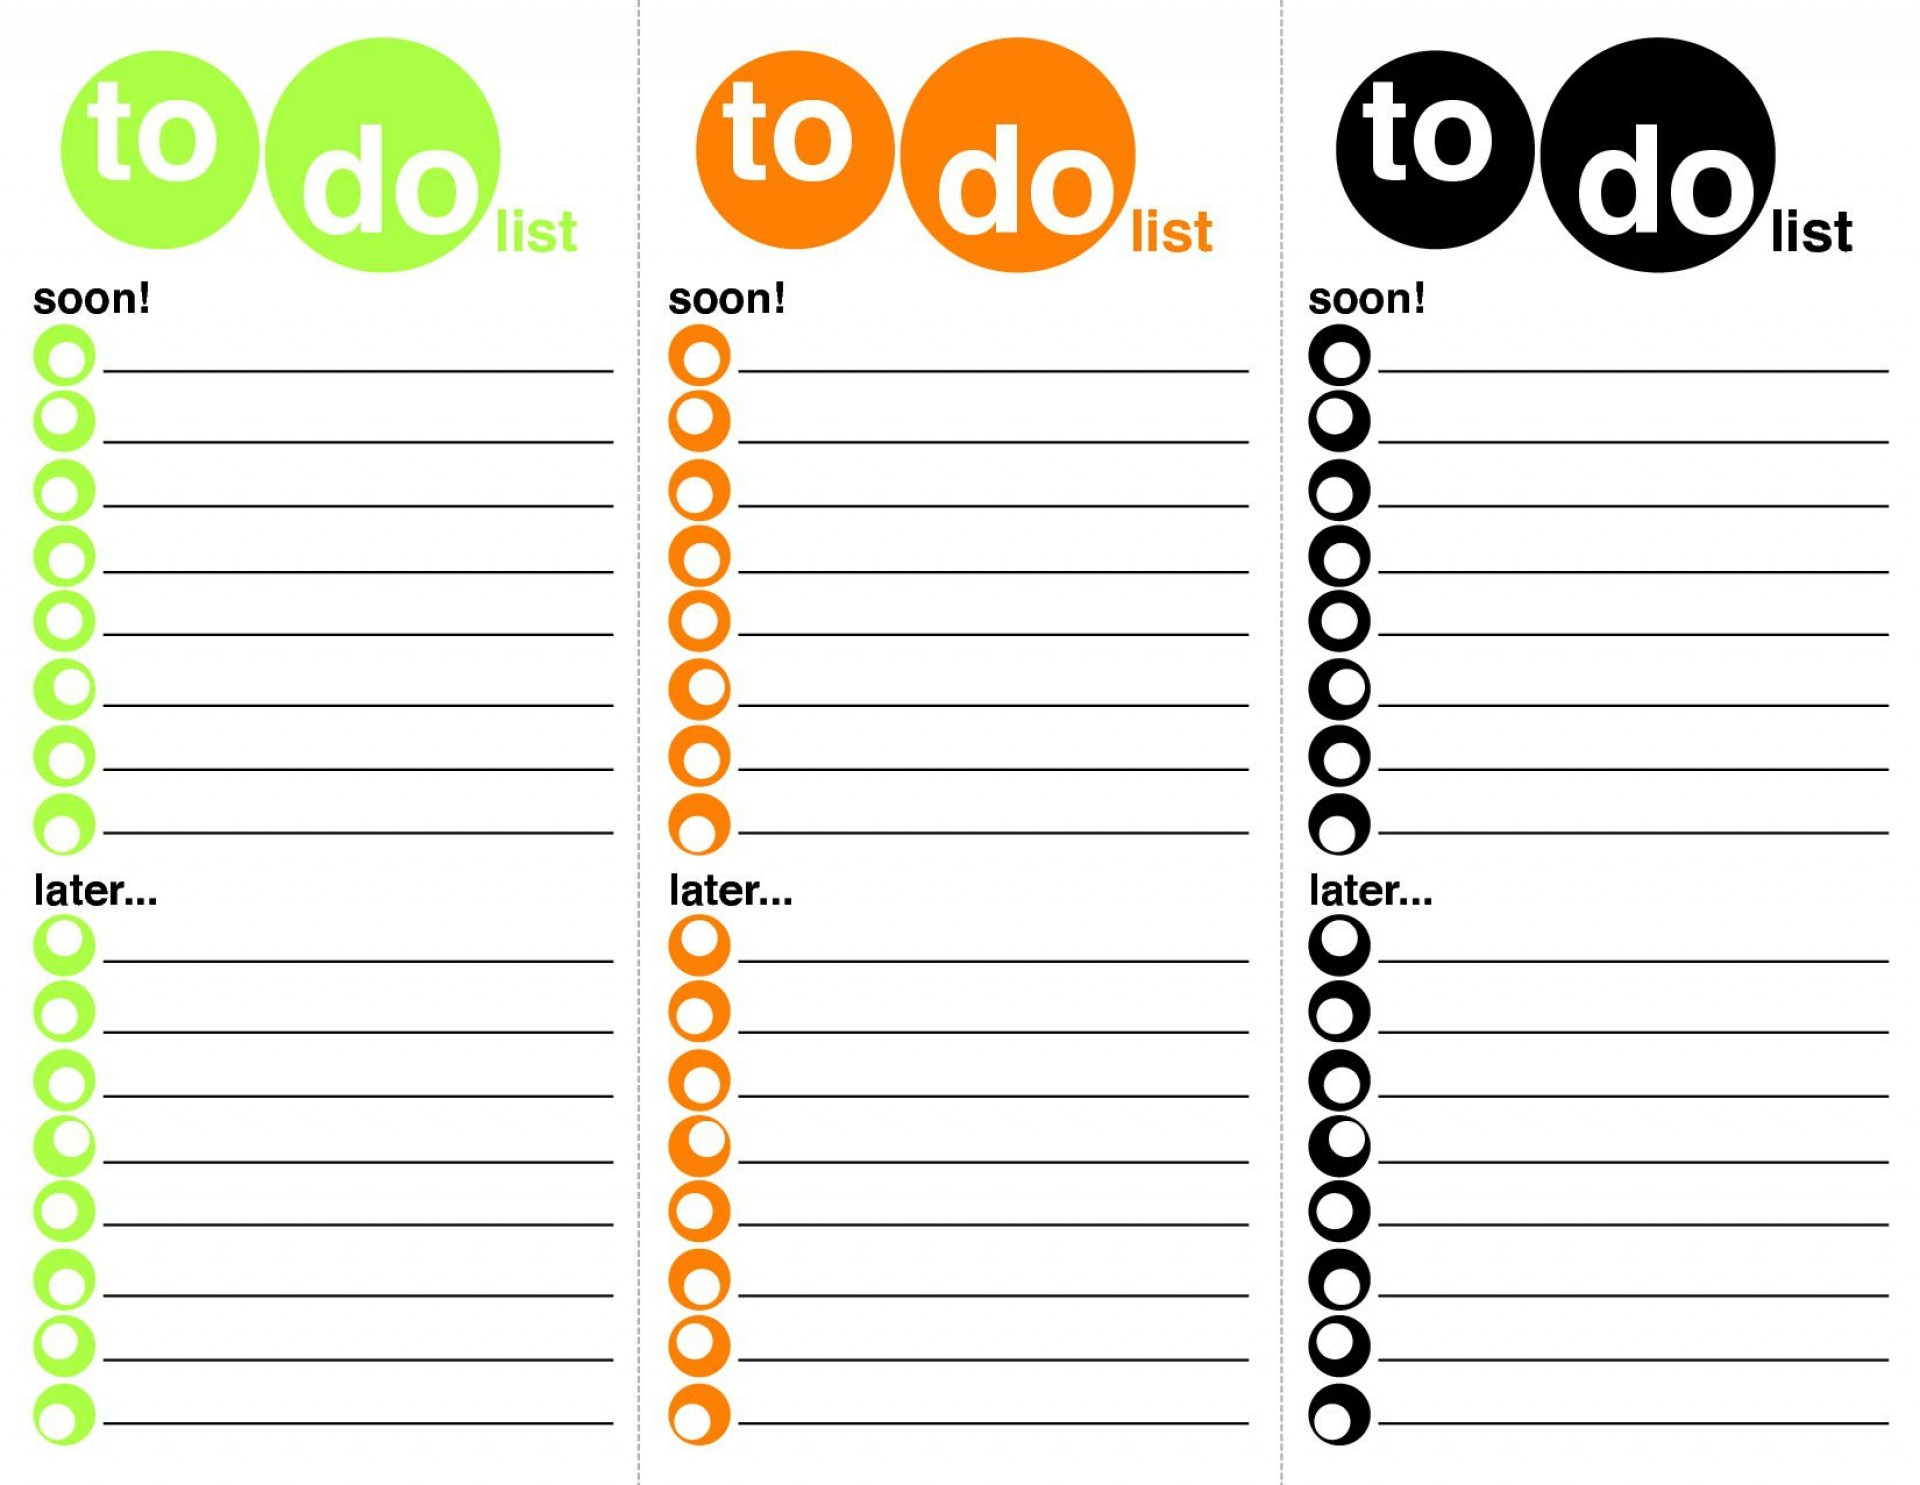 008 Staggering To Do List Template Word Sample 1920